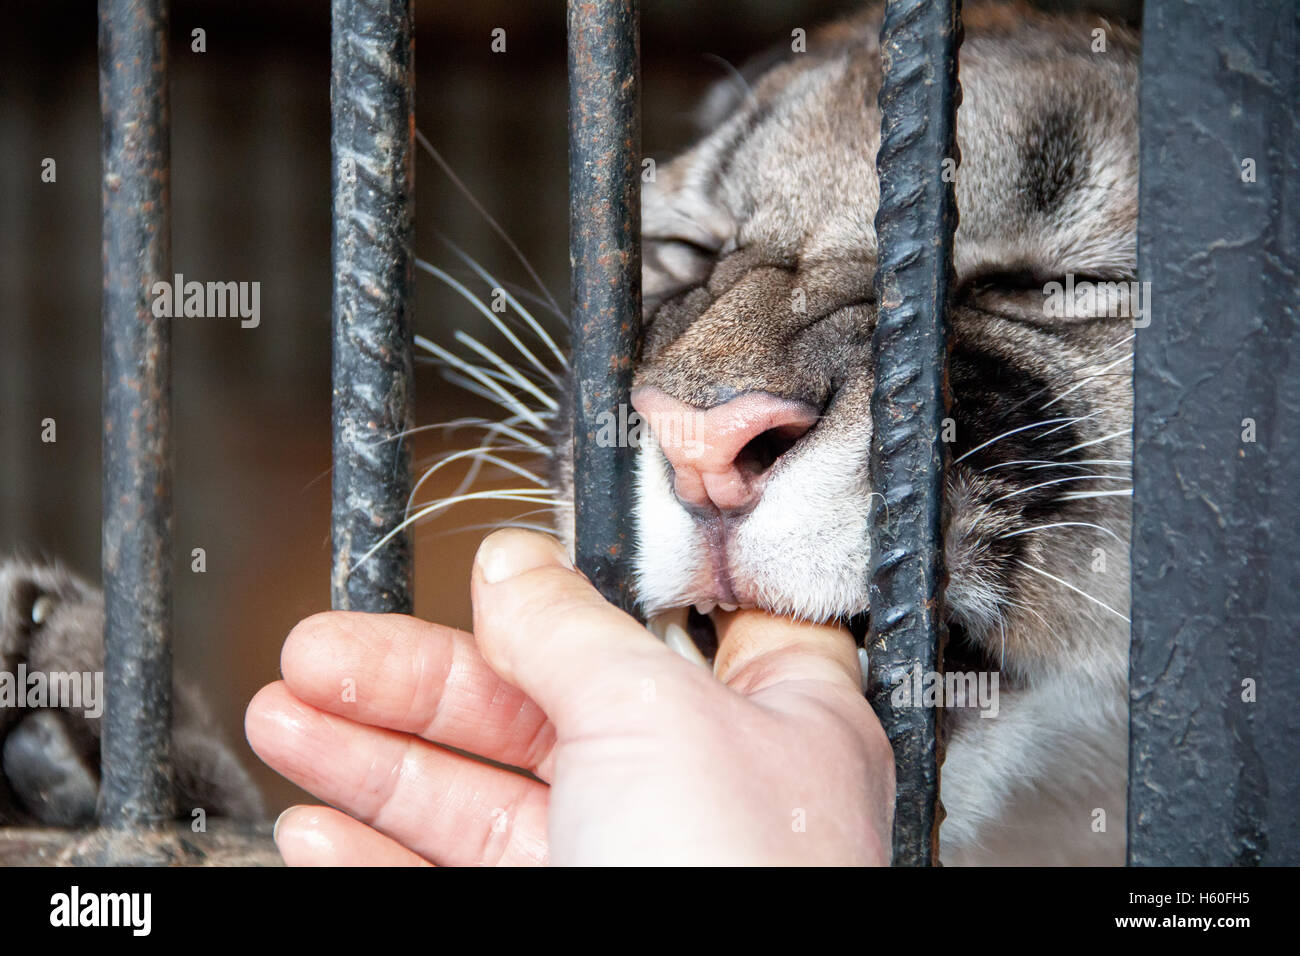 Lioness in the zoo biting human finger - Stock Image